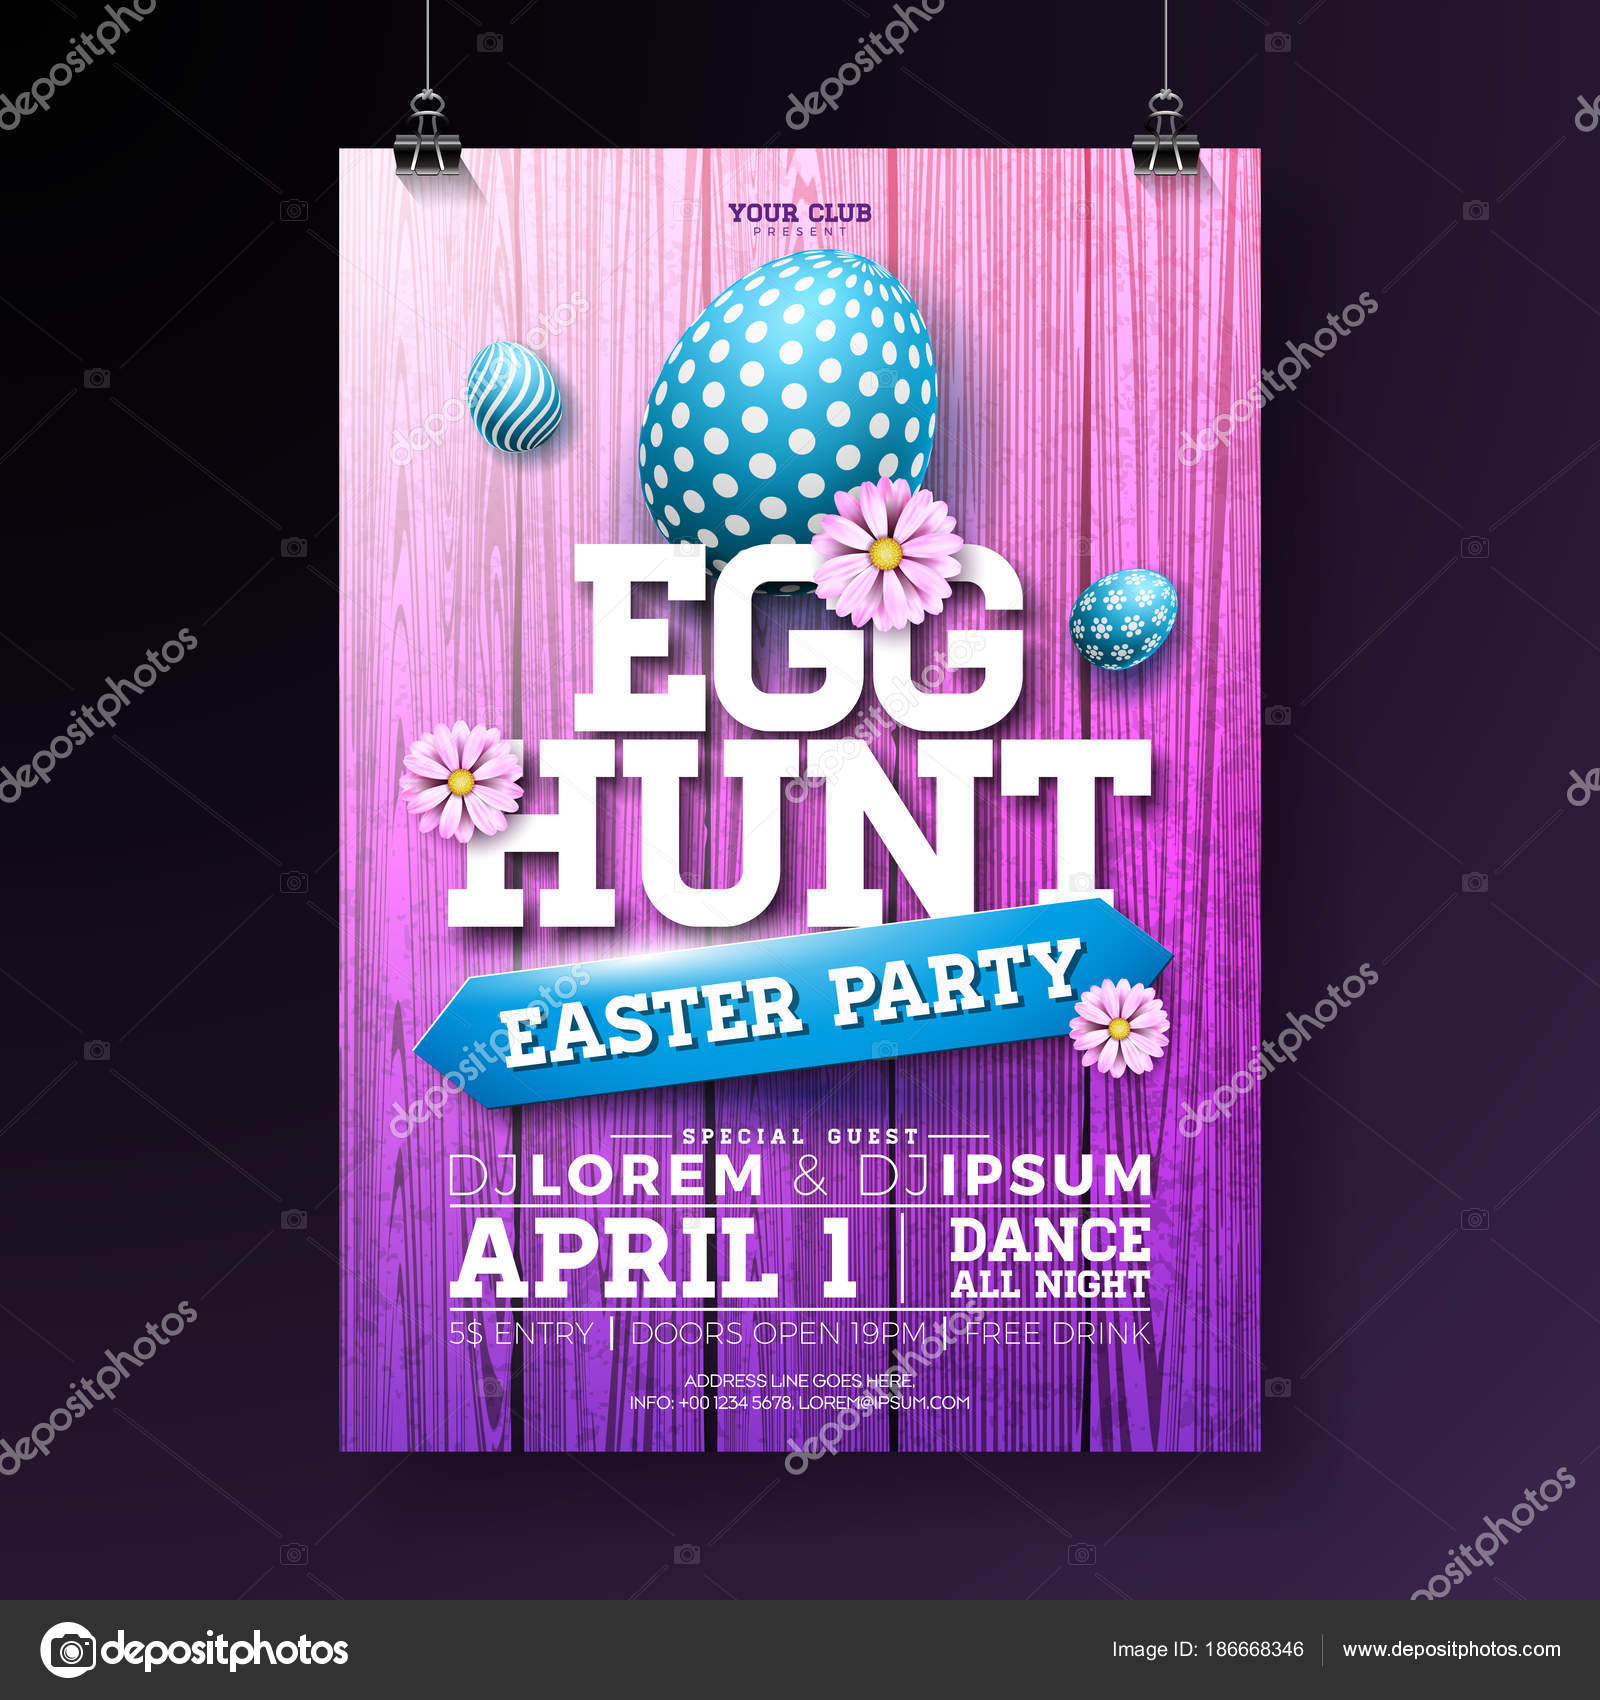 Vector Egg Hunt Easter Party Flyer Illustration With Painted Eggs, Flowers  And Typography Elements On